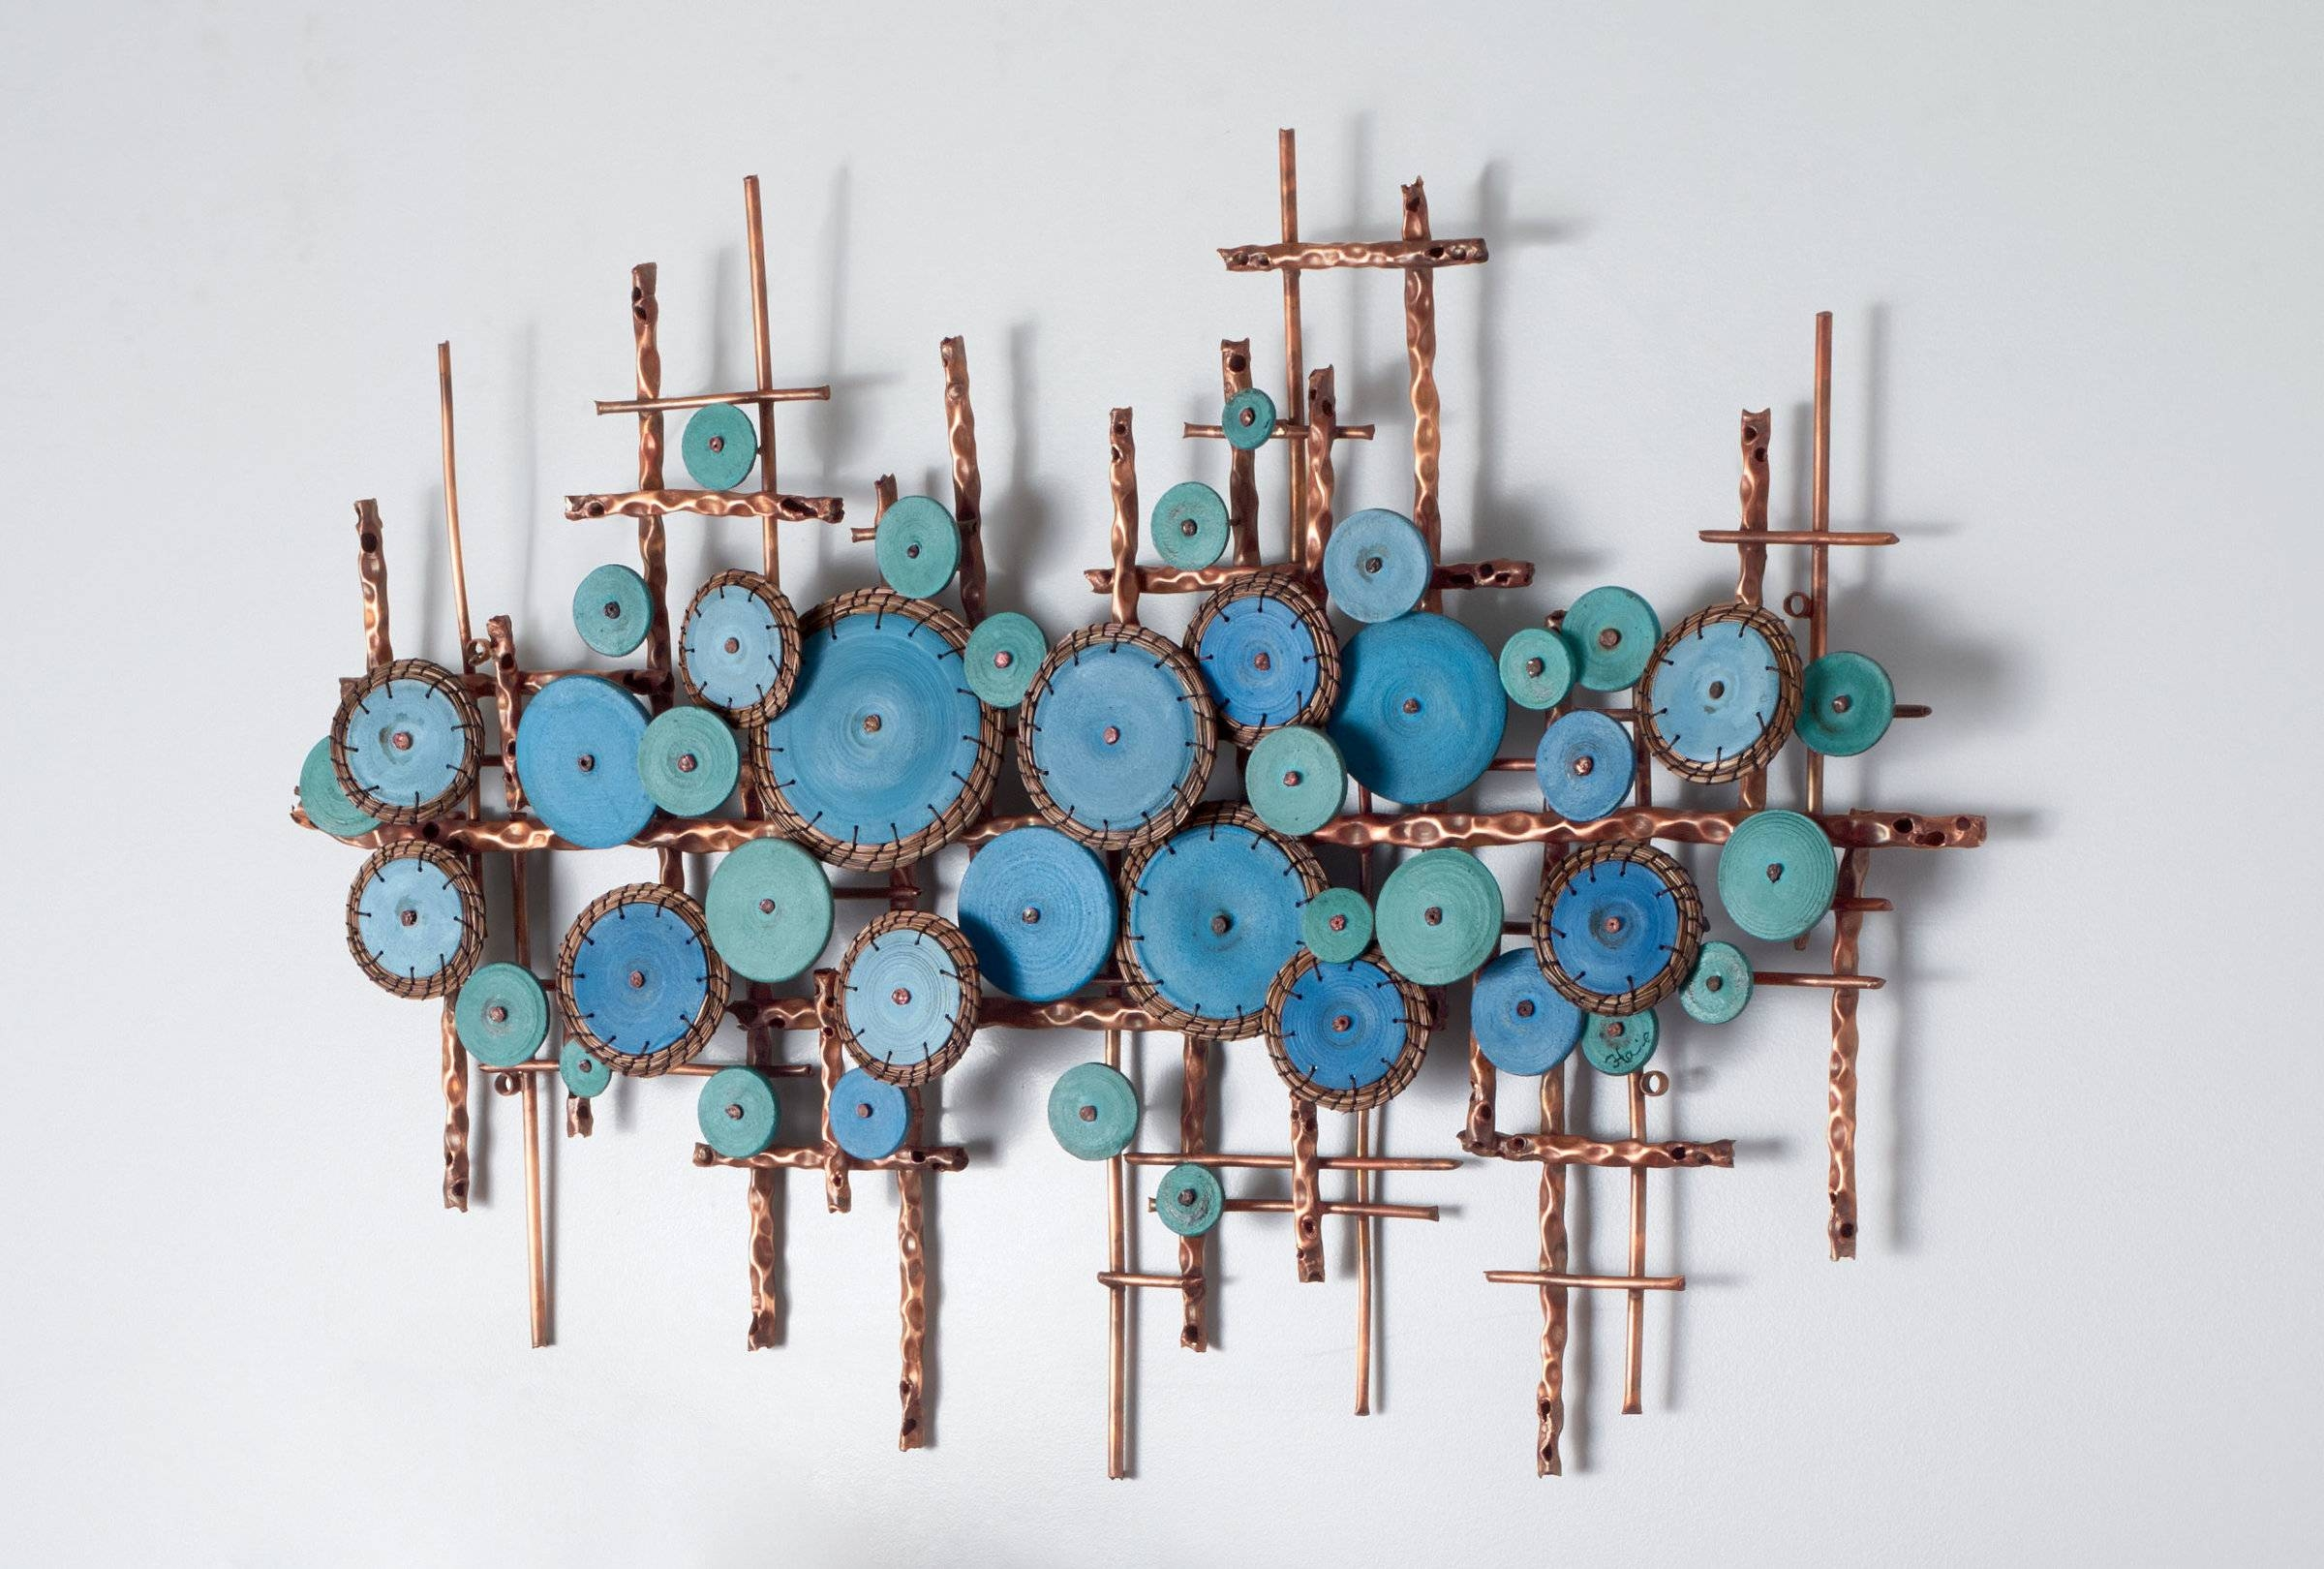 Unique Ceramic Wall Art And Sculpture | Artful Home Inside Most Up To Date Large Ceramic Wall Art (Gallery 16 of 25)